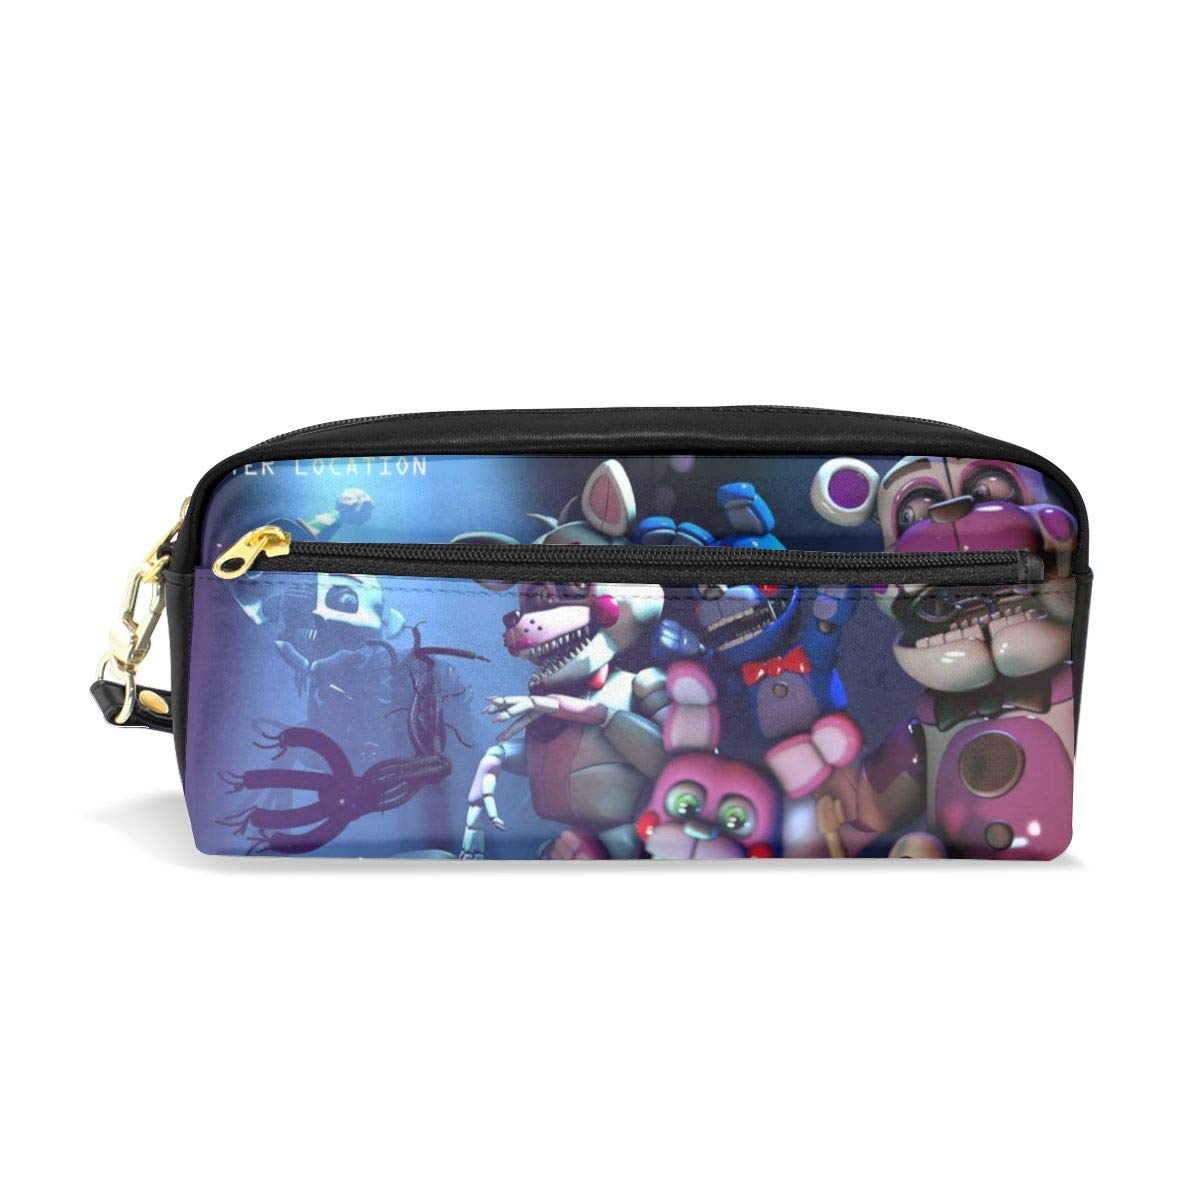 FANGHUABATHRHSQ FNAF_Sister Unisex Student Pencil Case Pen Box Stationery Bag Lightweight Pouch Makeup Cosmetic Bags with Double Zippered for Girl Boy